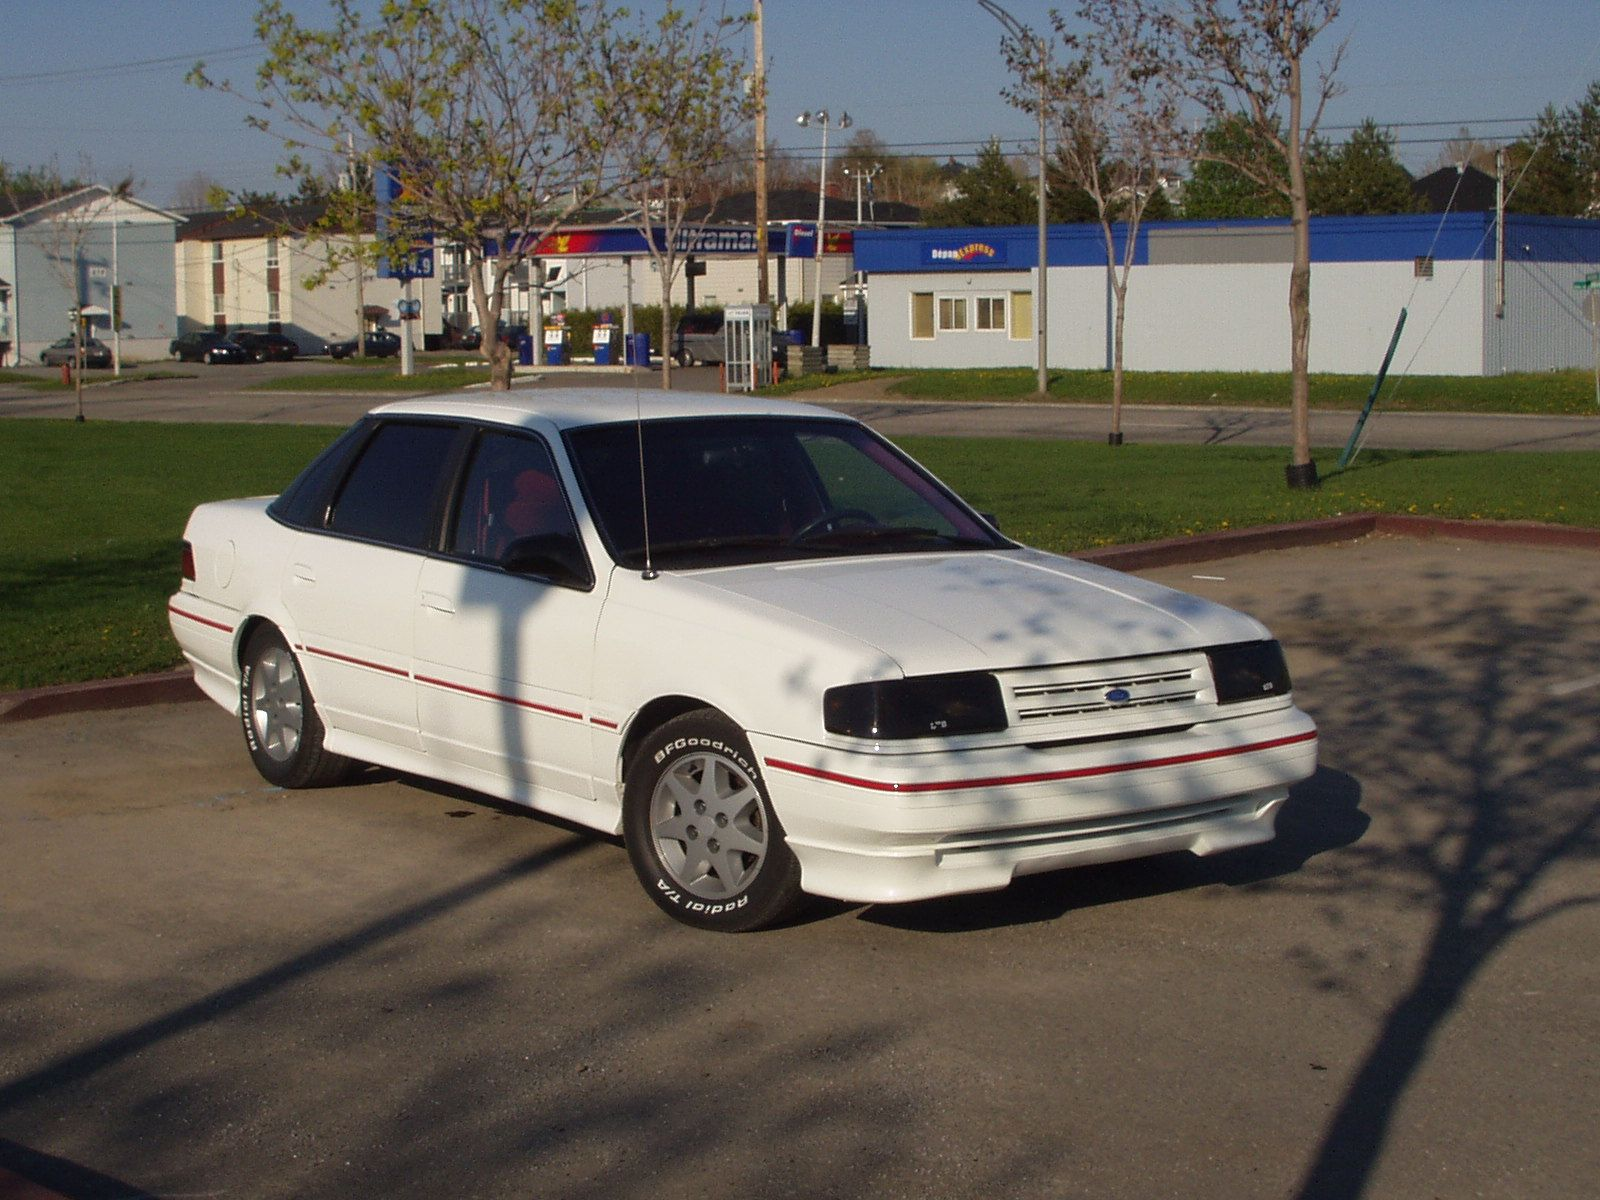 1989 ford tempo 1989 ford tempo picture exterior ford. Black Bedroom Furniture Sets. Home Design Ideas